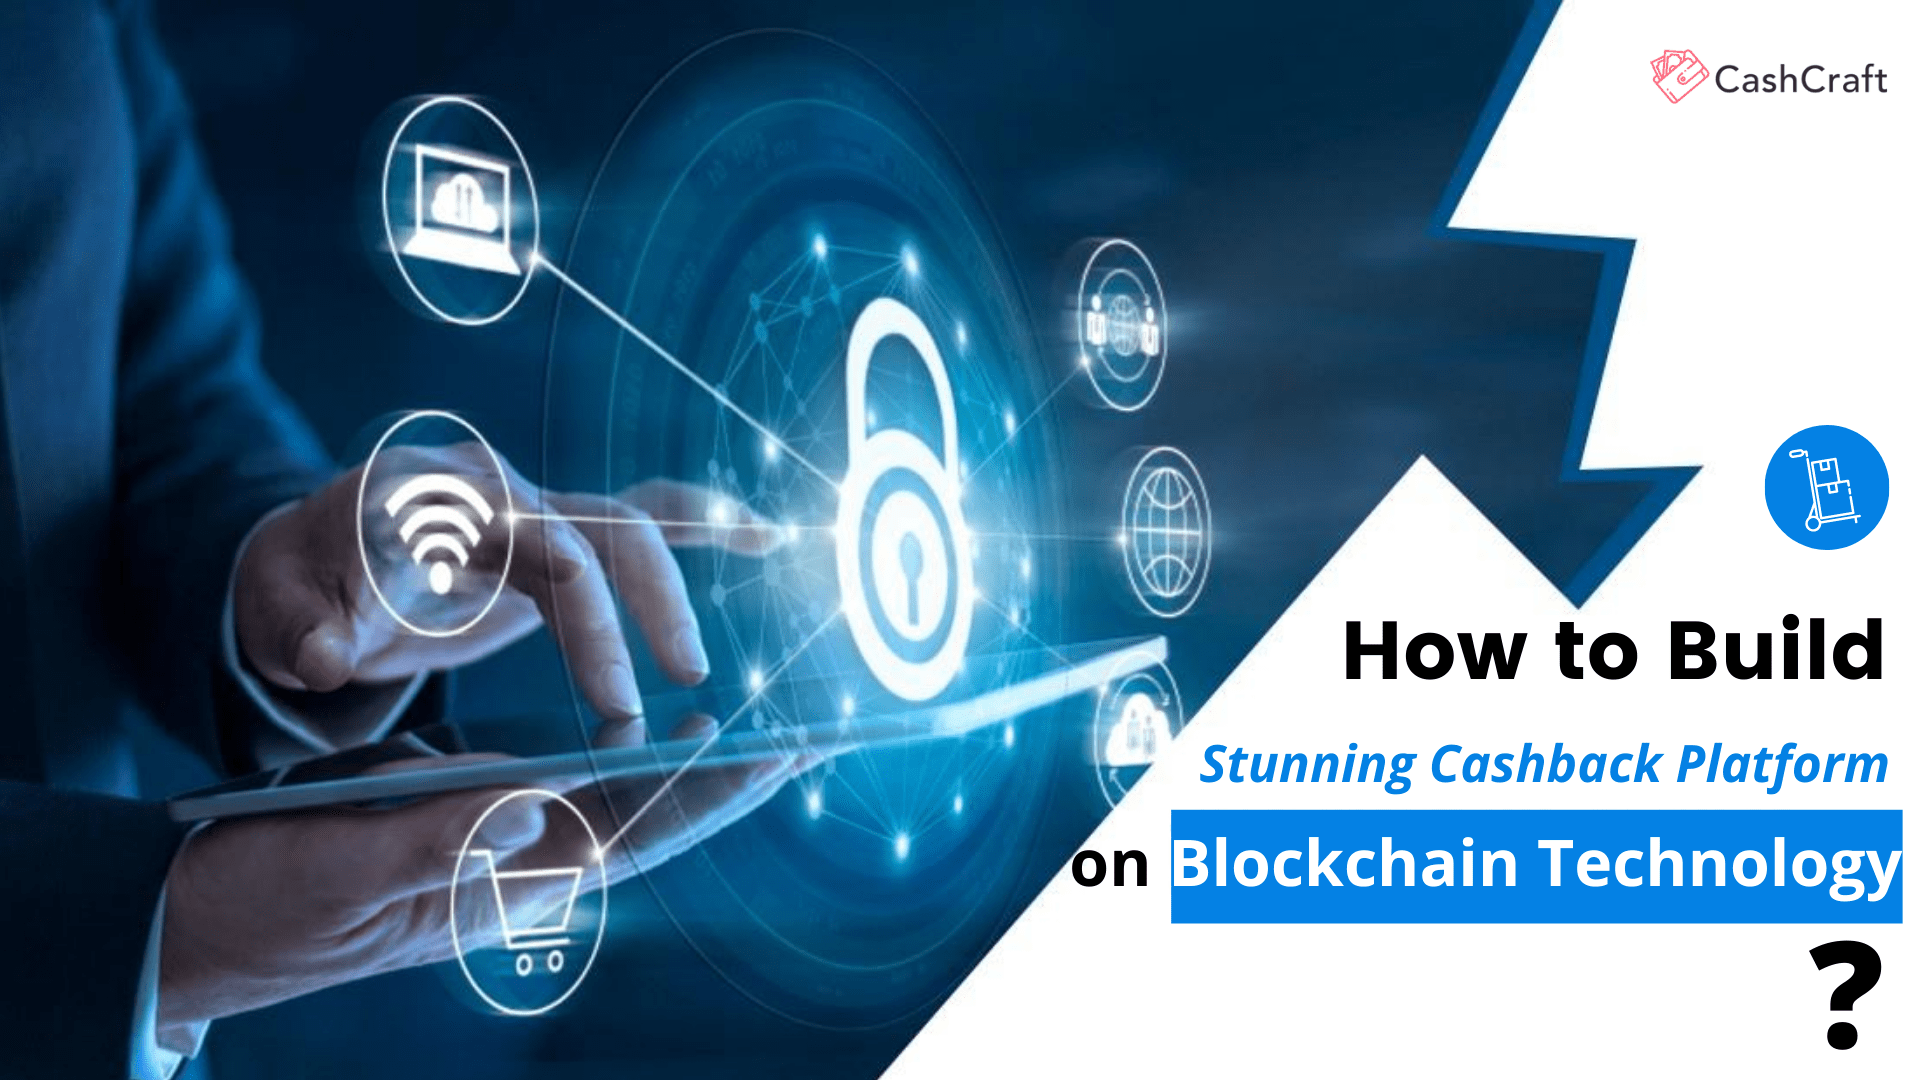 How to Build Cashback Platform on Blockchain Technology?